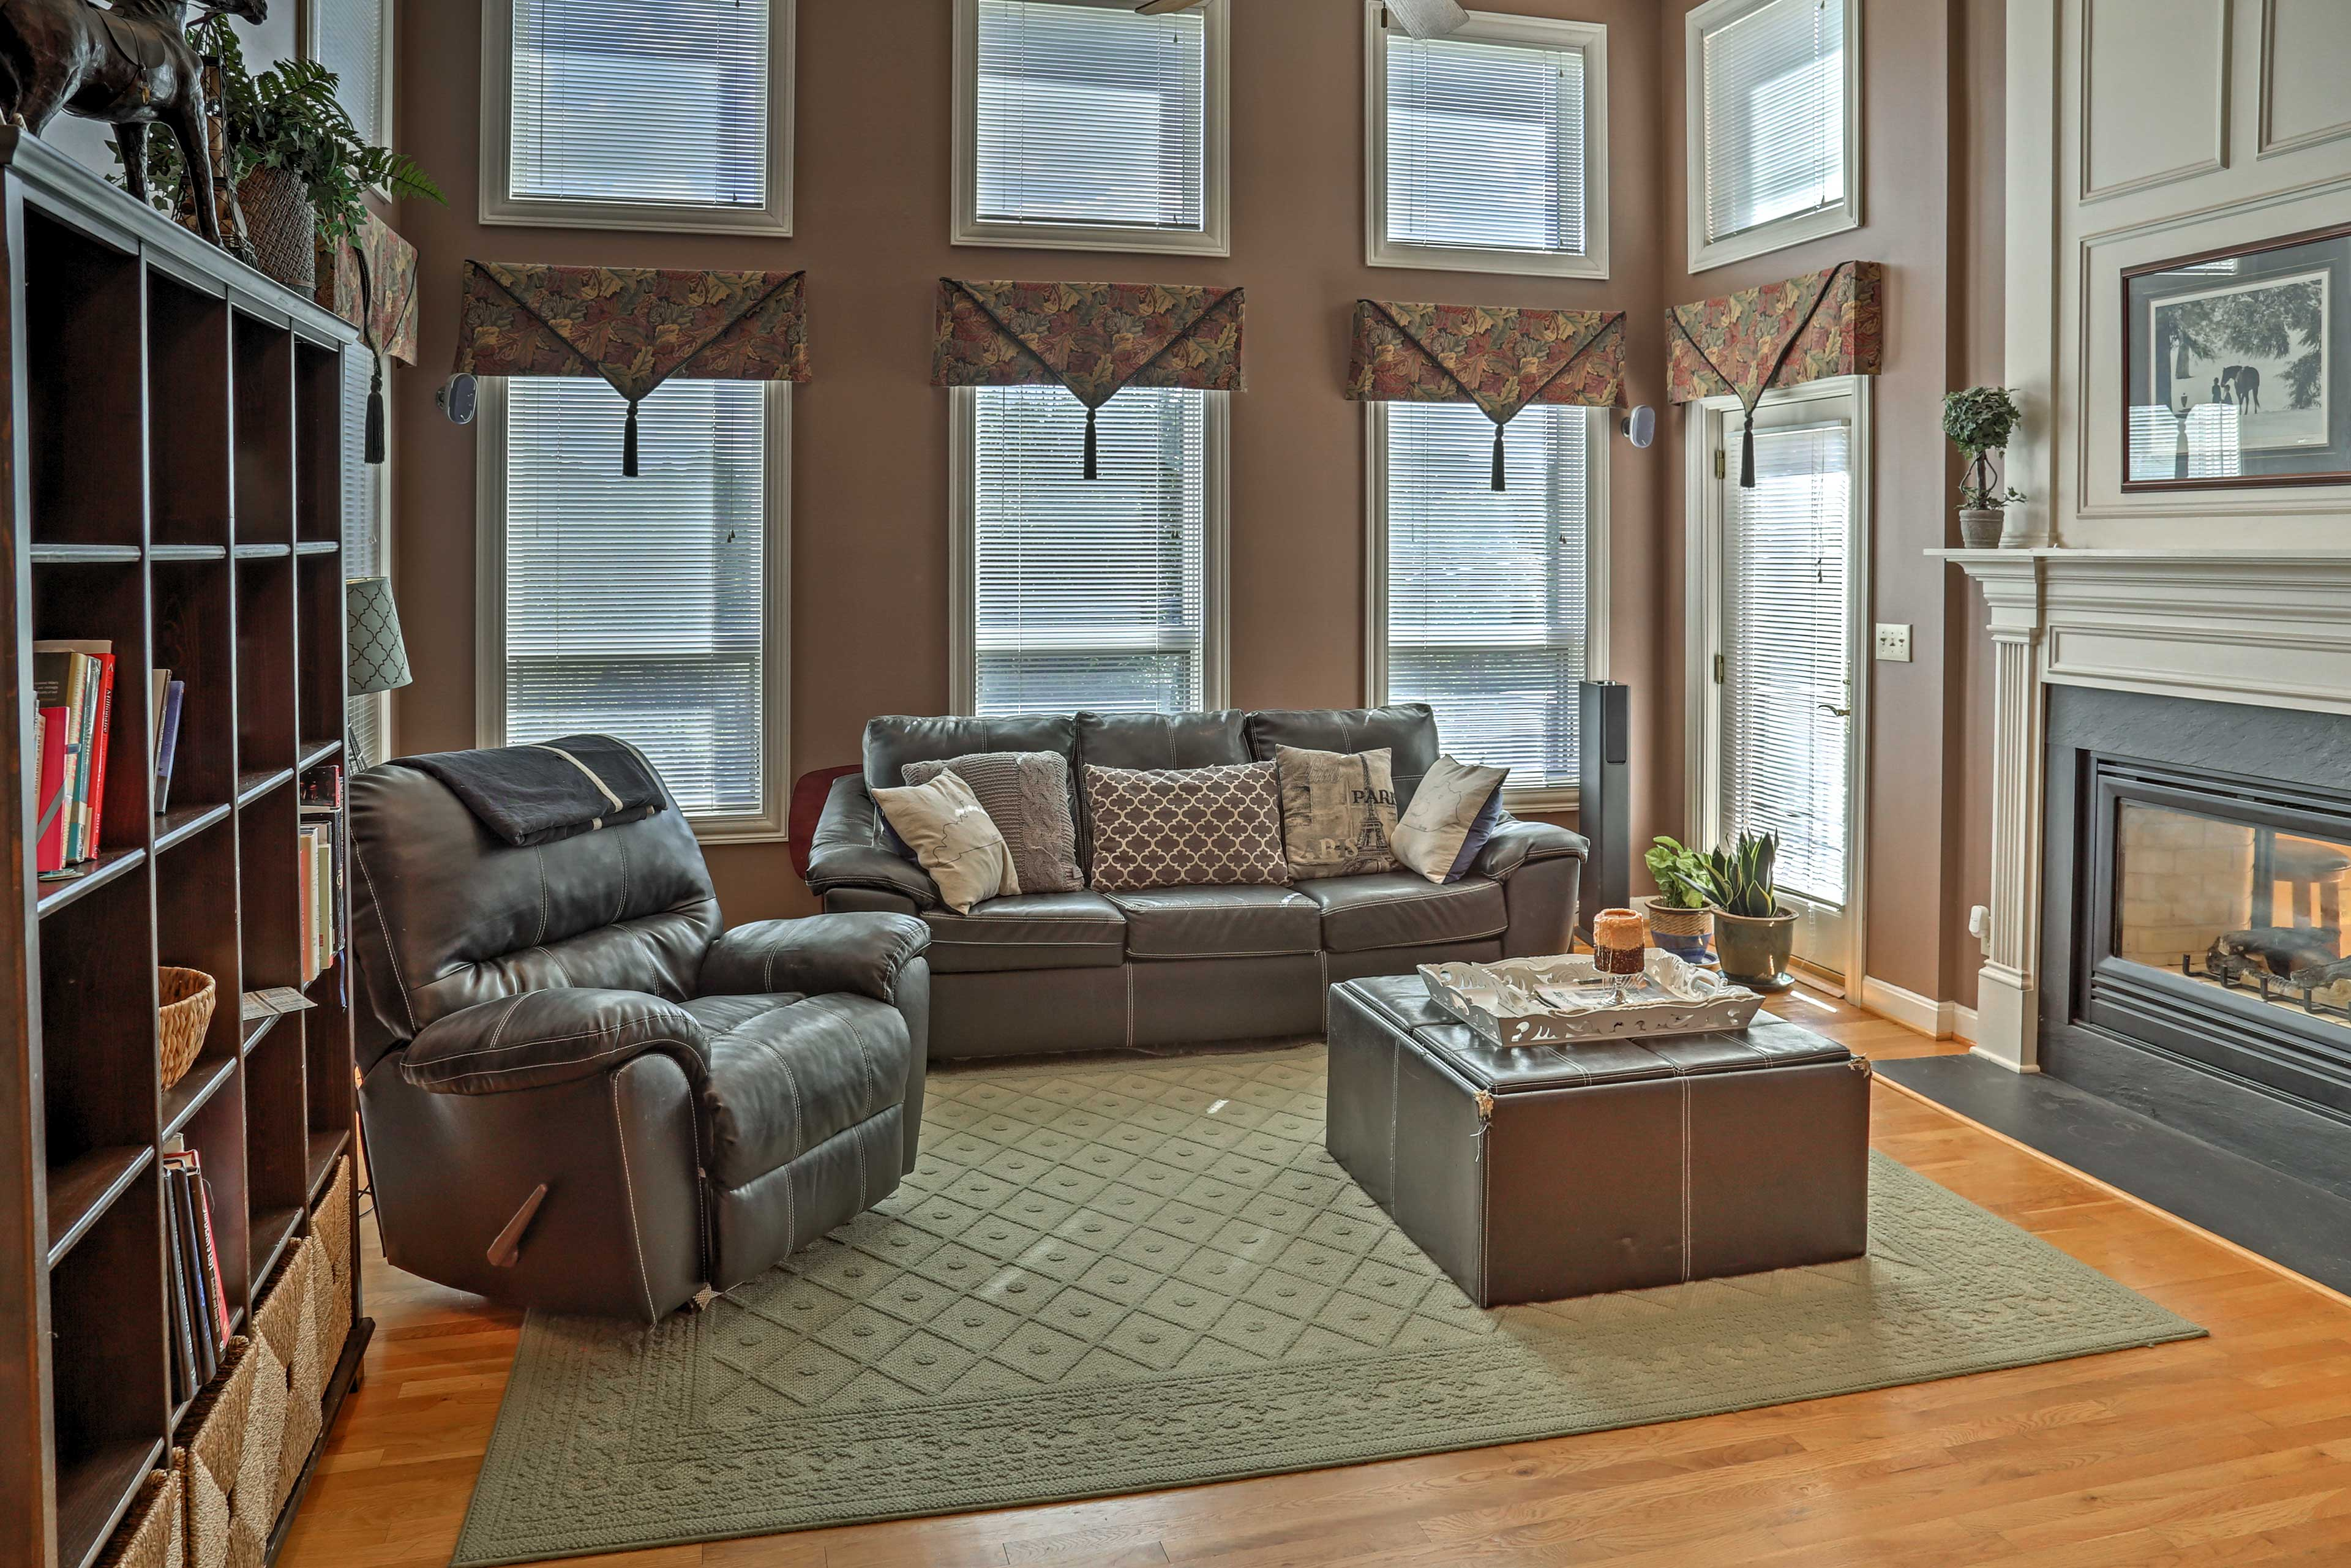 This home boasts 2,728 square feet of well-appointed living space.